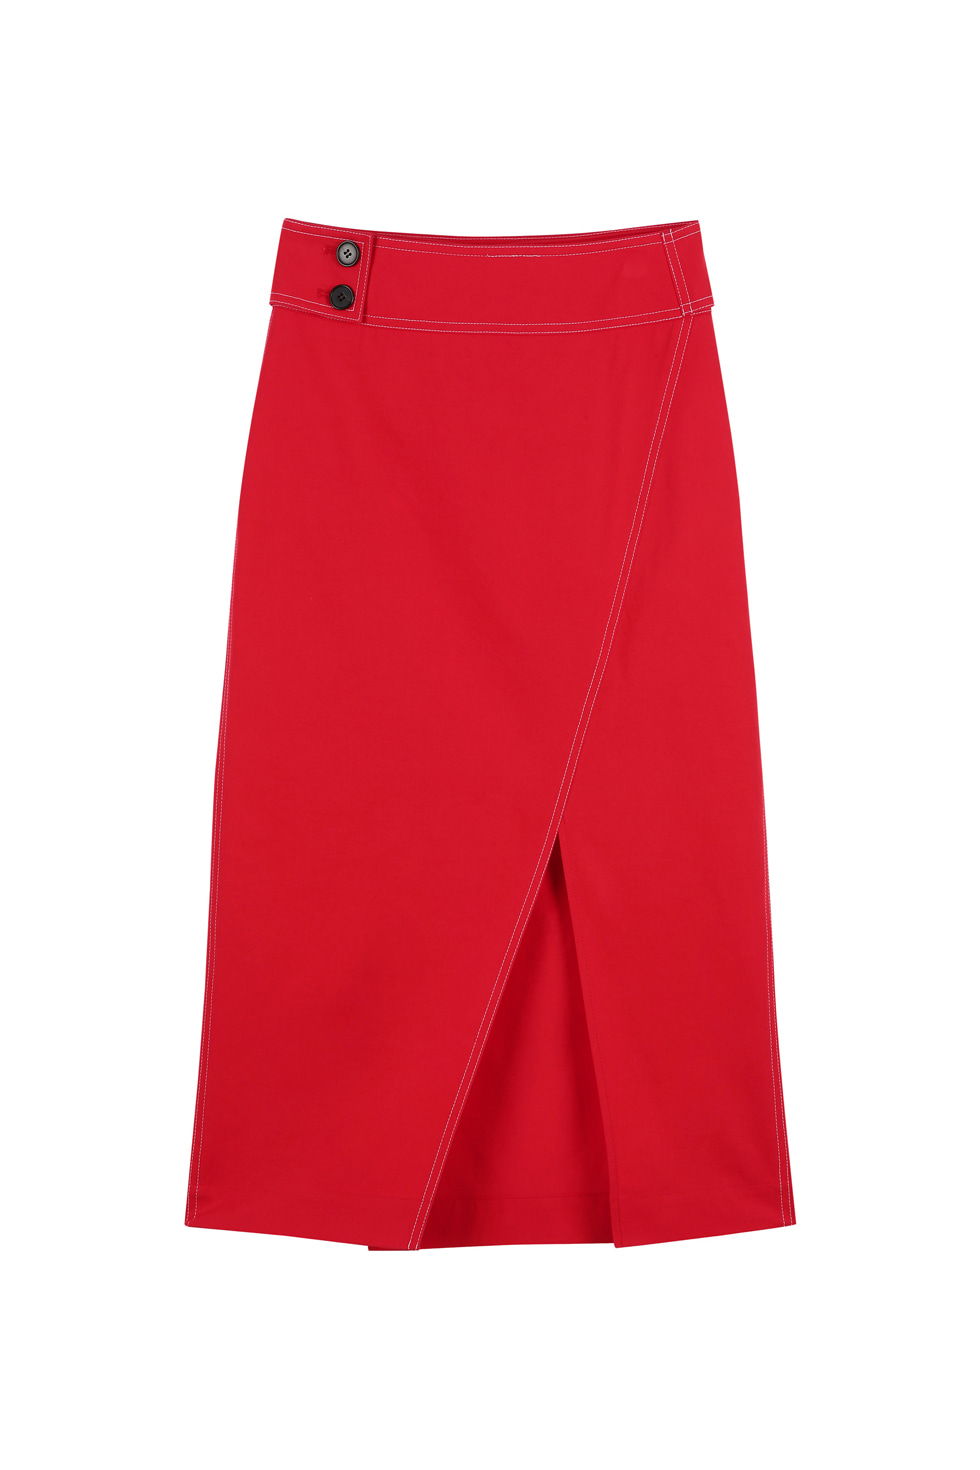 STITCH SKIRT - RED